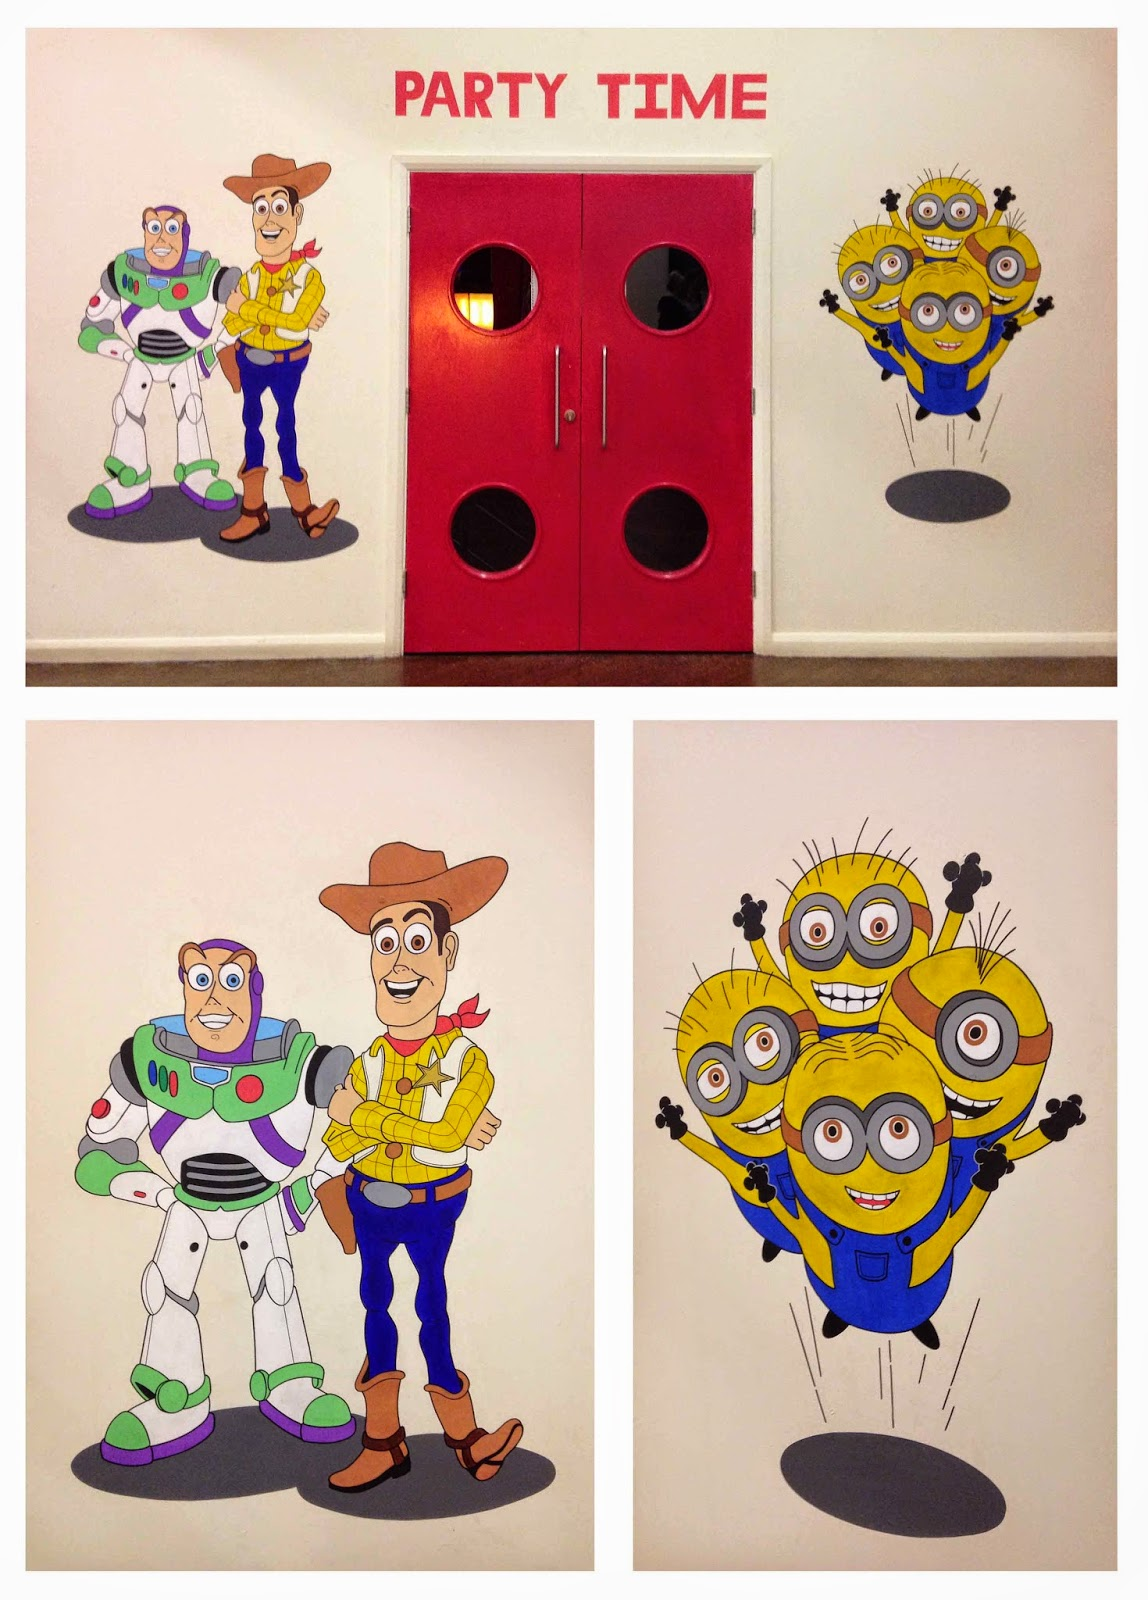 Ollie stone illustration by ollie stone murals signage wall art giant wall mural toy story and minions amipublicfo Image collections